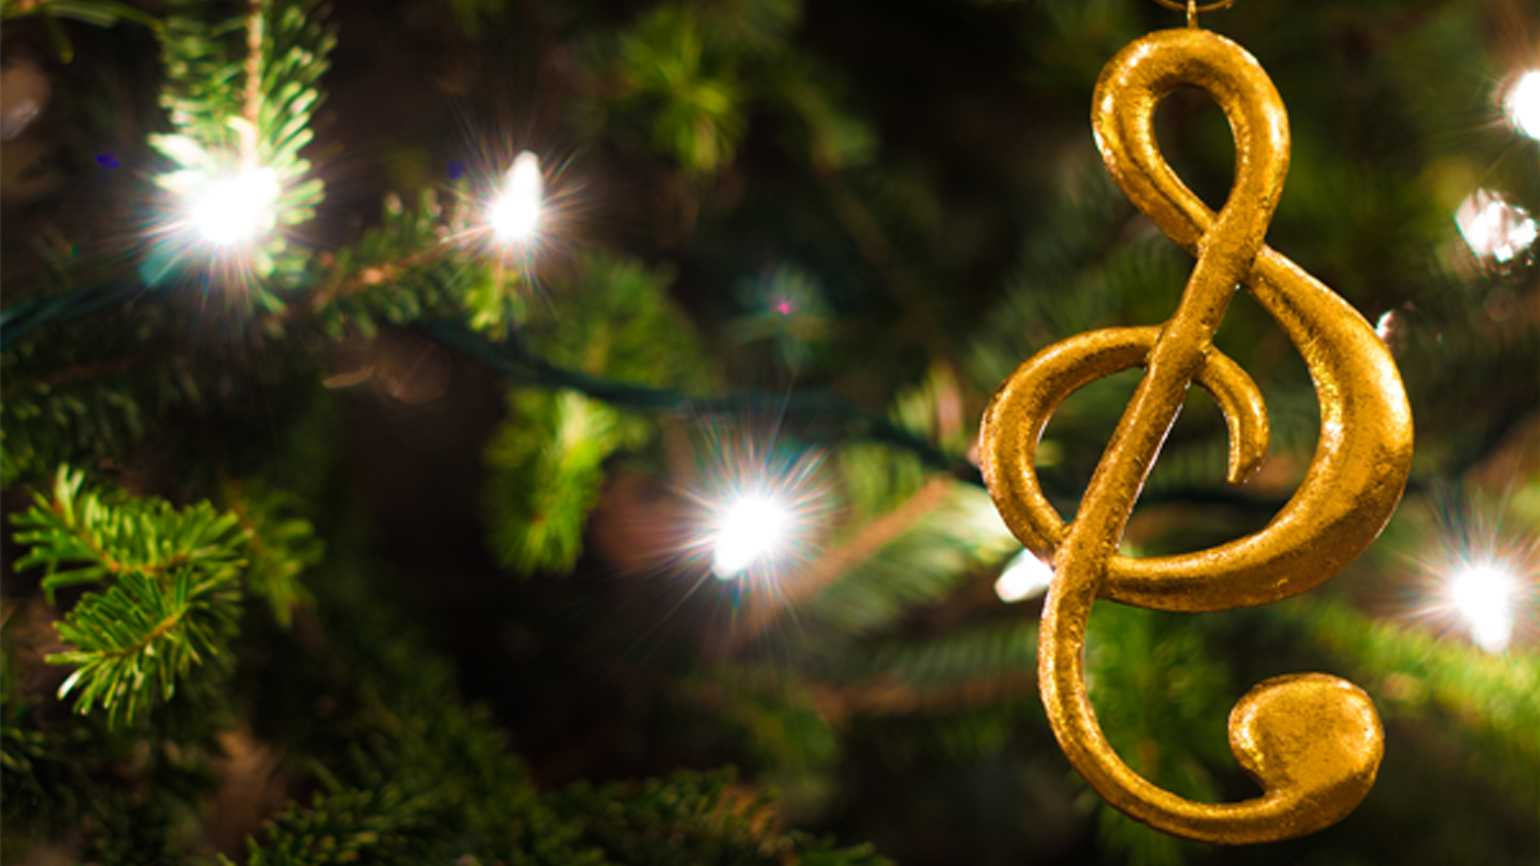 Golden music symbol ornament hanging from well-lit Christmas tree